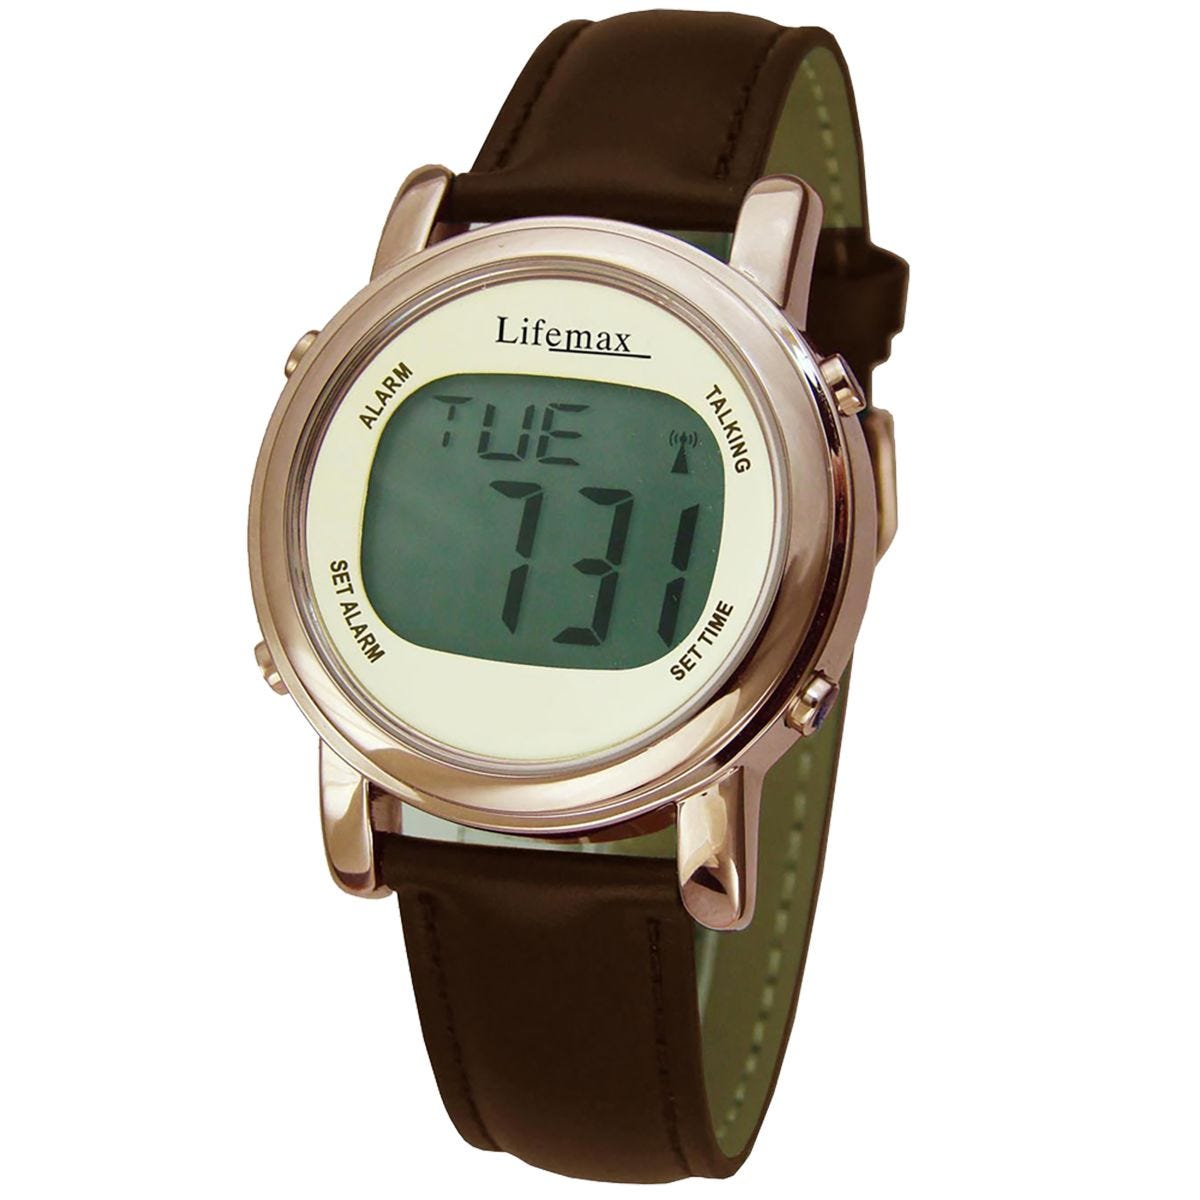 Lifemax Digital Chic Atomic Talking Watch - Copper/Brown